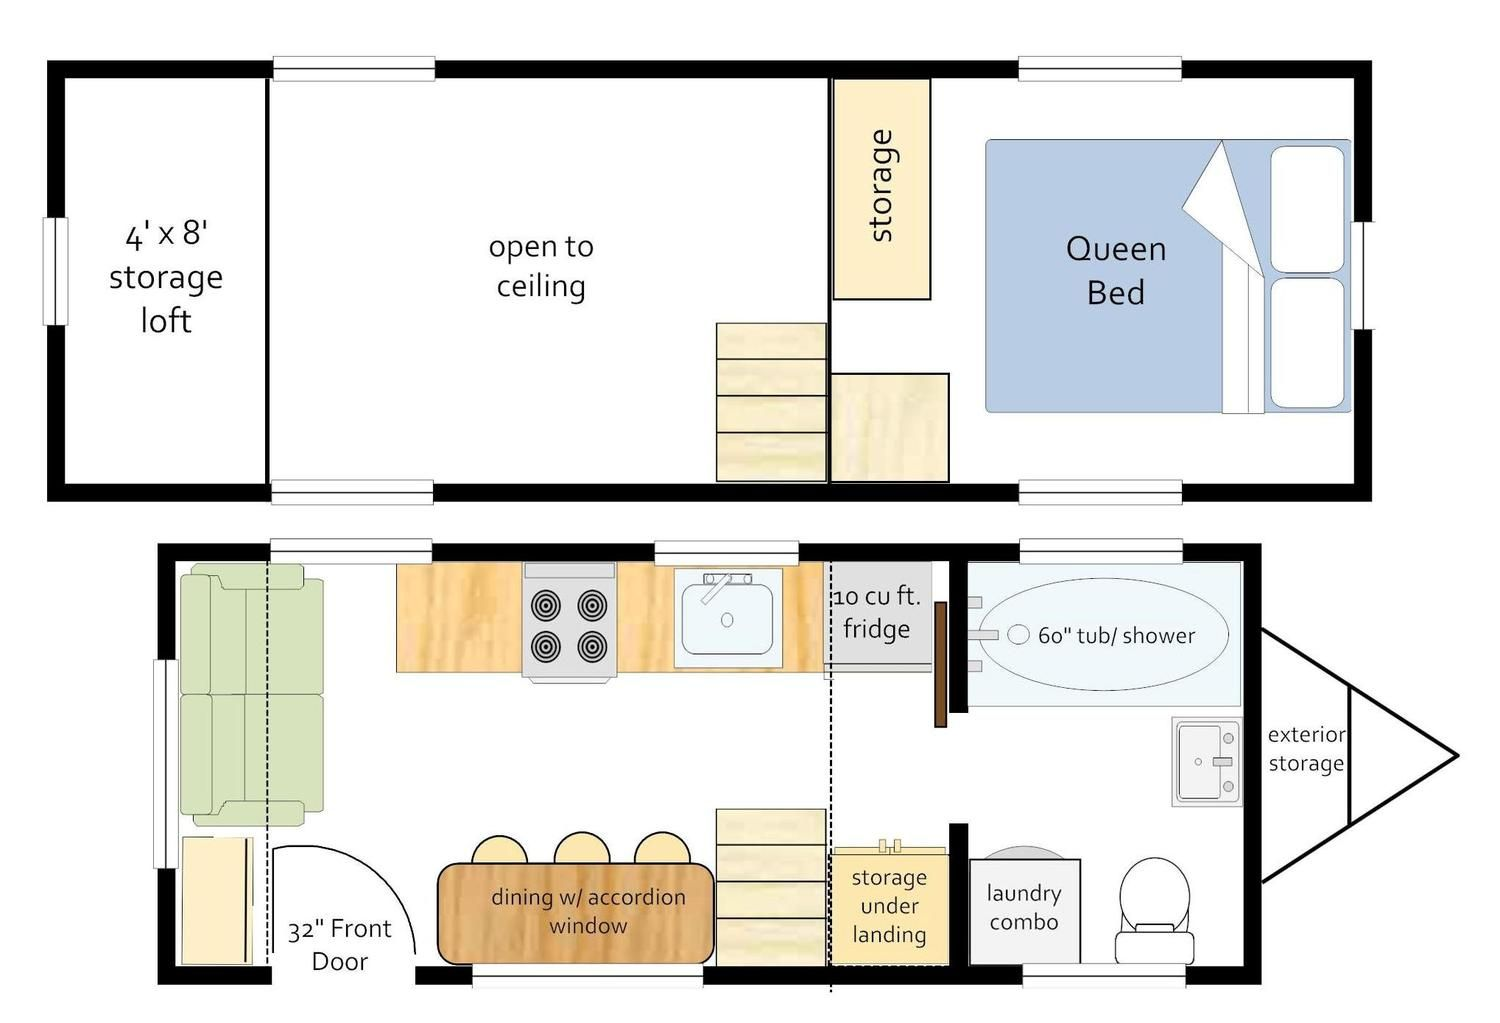 20 Ft Trailer With 2 Ft Loft Extensions Full Bath With Tub Shower Laundry Unit Toilet And Sink Di Floor Plans Building A Tiny House Floor Plan Design